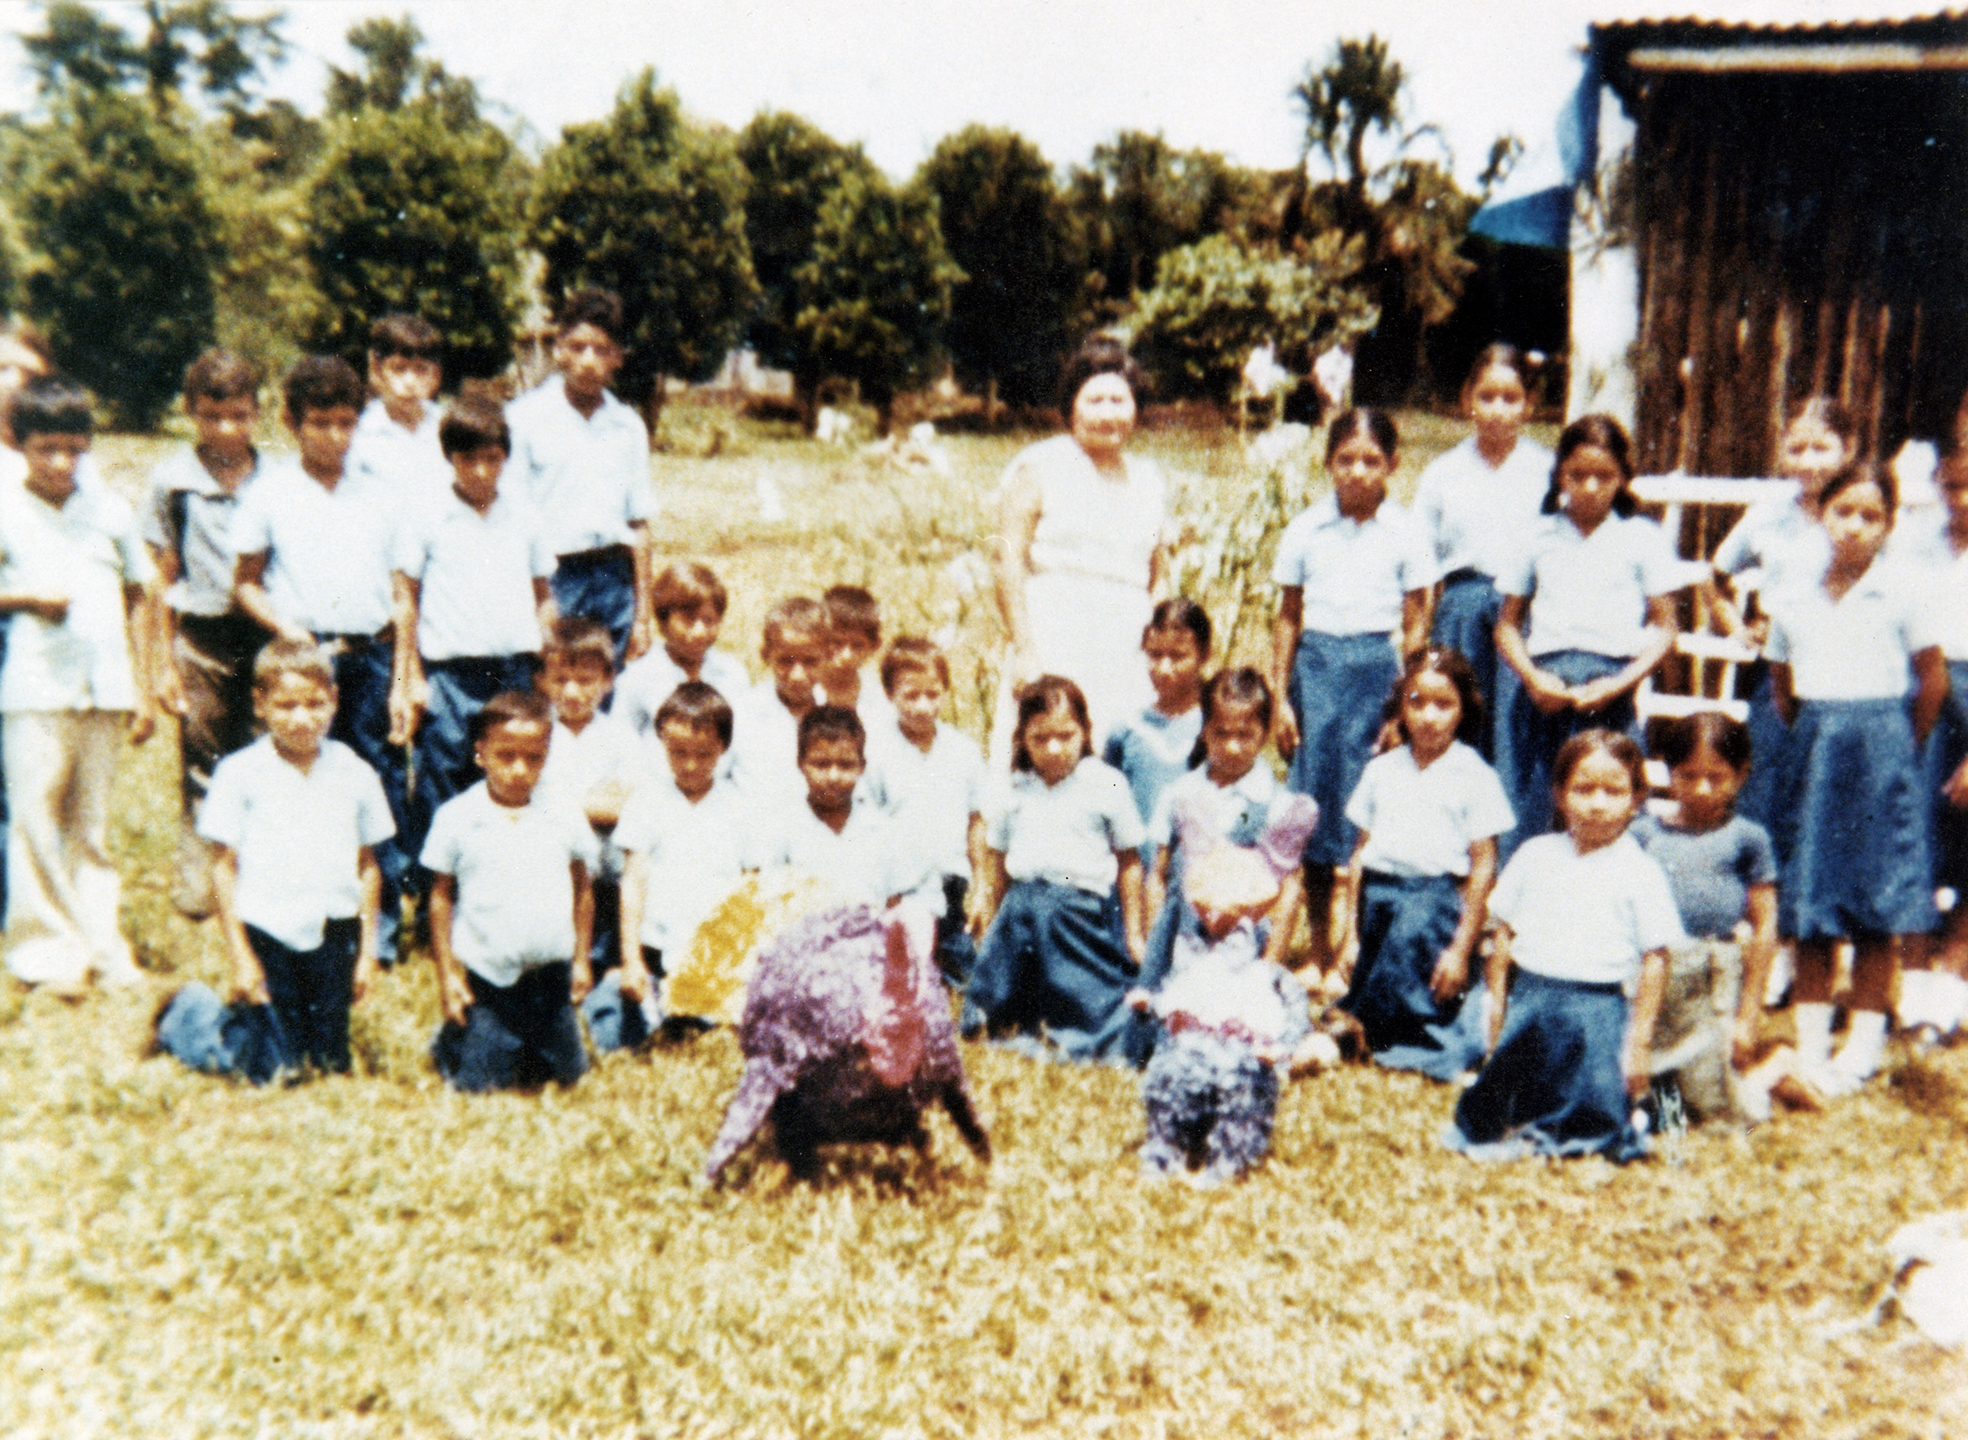 Schoolchildren gather in Dos Erres for an Independence Day celebration on Sept. 15, 1982. (Submitted by Sara Romero)